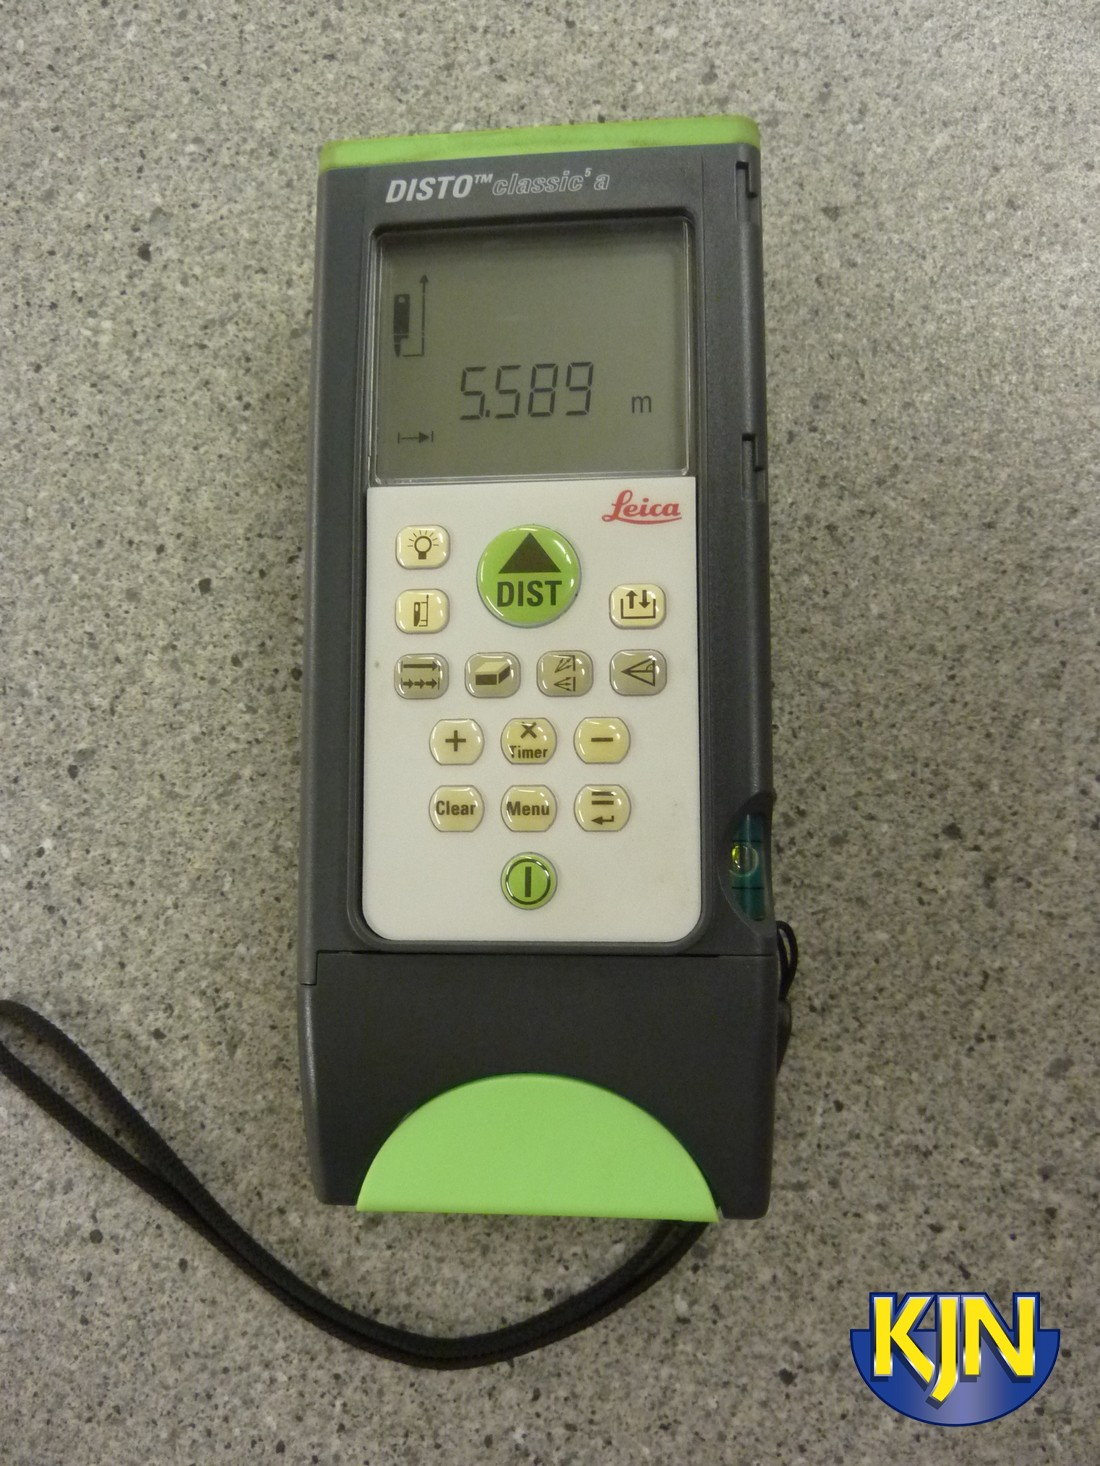 LEICA Laser Distance Meter for internal use